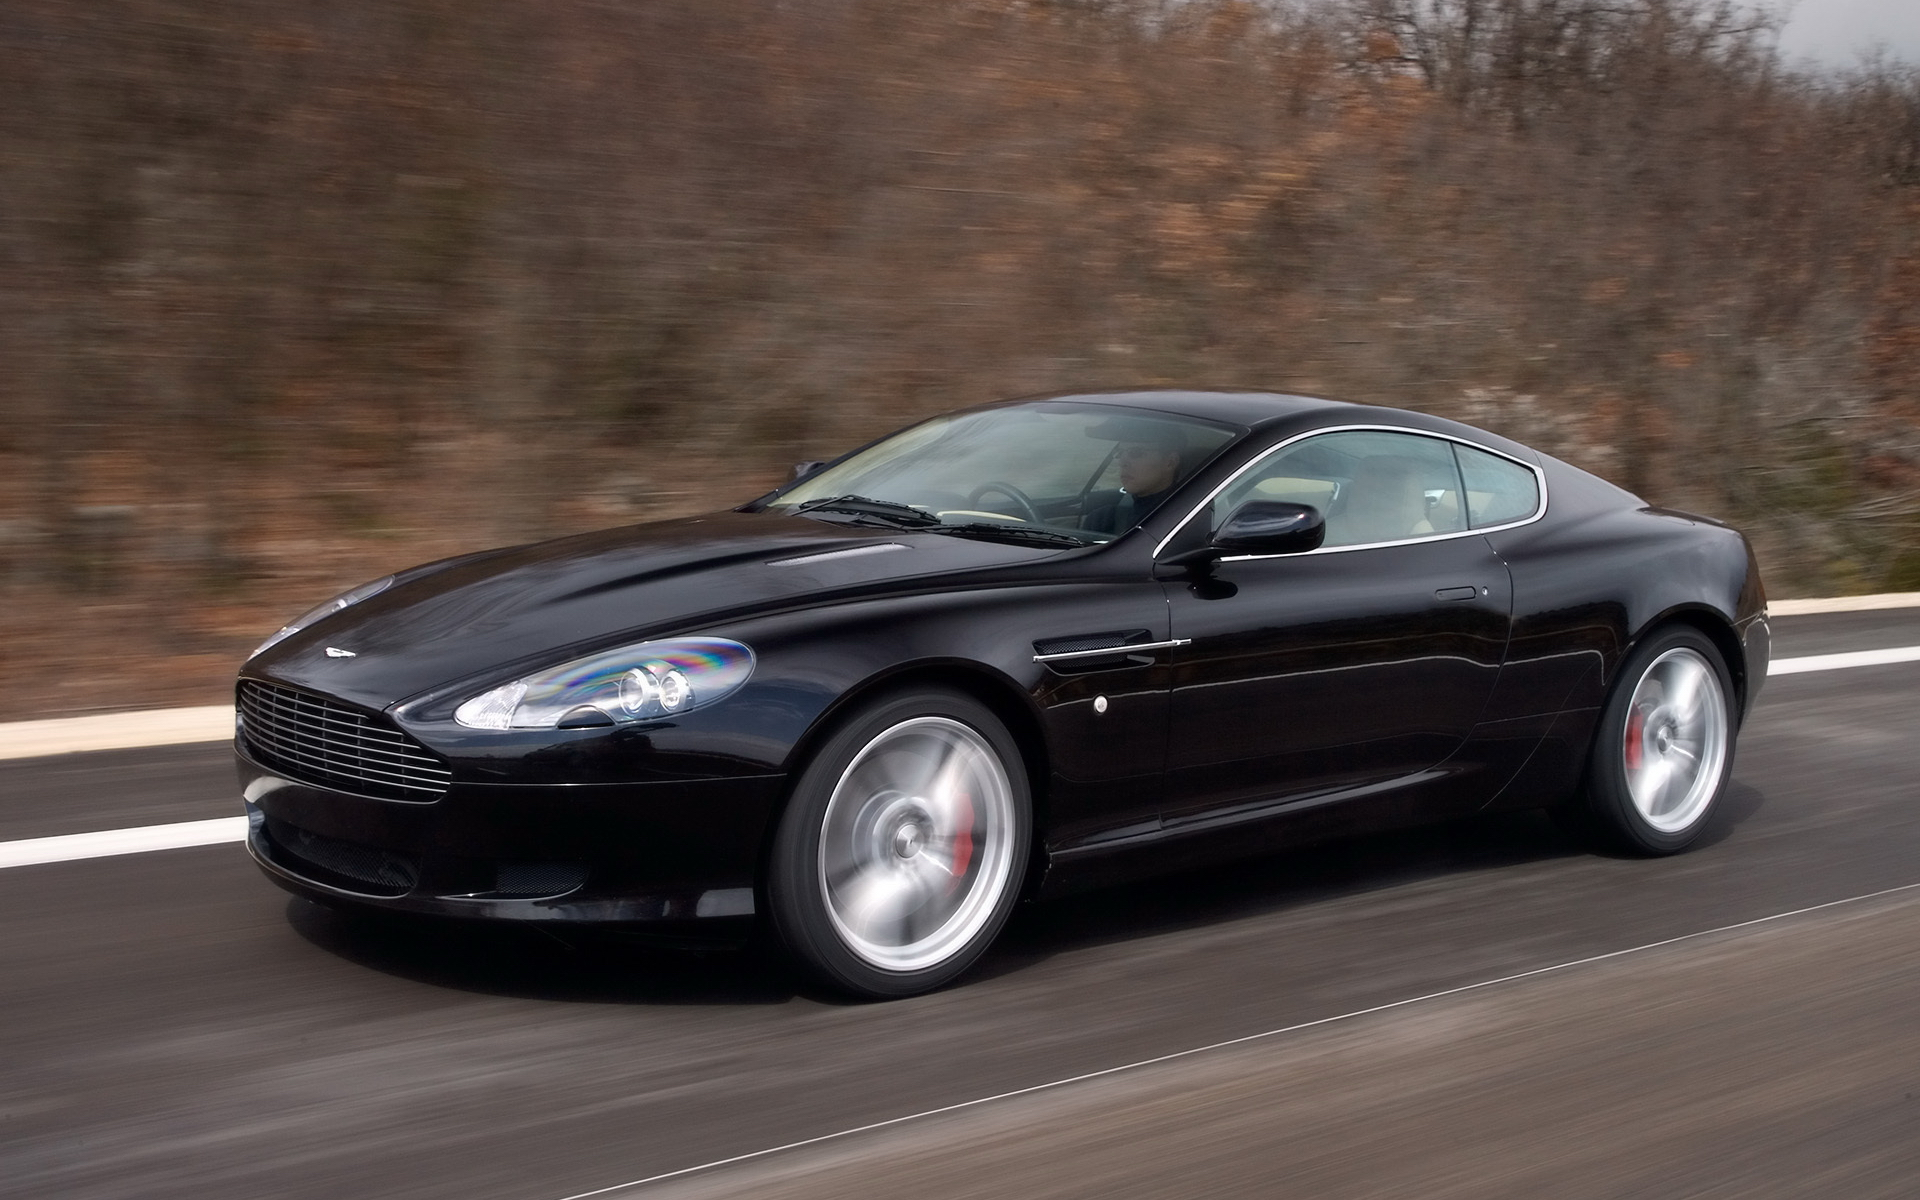 aston martin db9 wallpapers pictures images. Black Bedroom Furniture Sets. Home Design Ideas